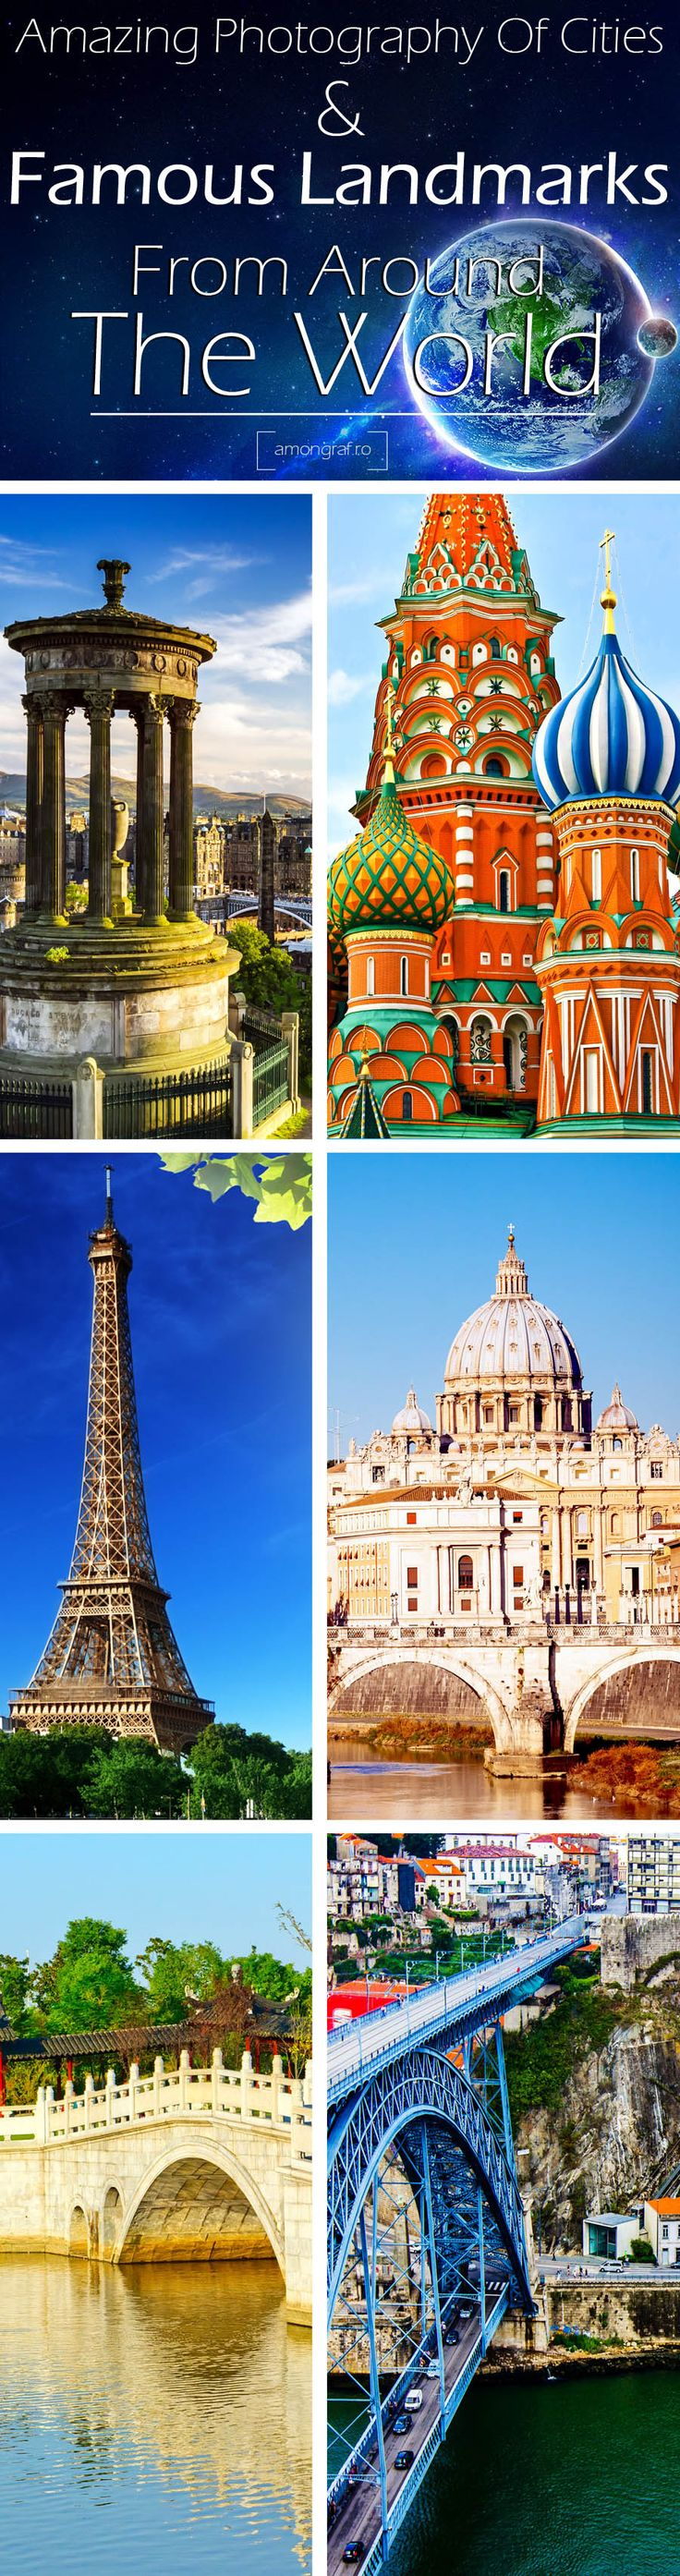 Amazing Photography Of Cities and Famous Landmarks From Around The World #travel #destinations #landmarks